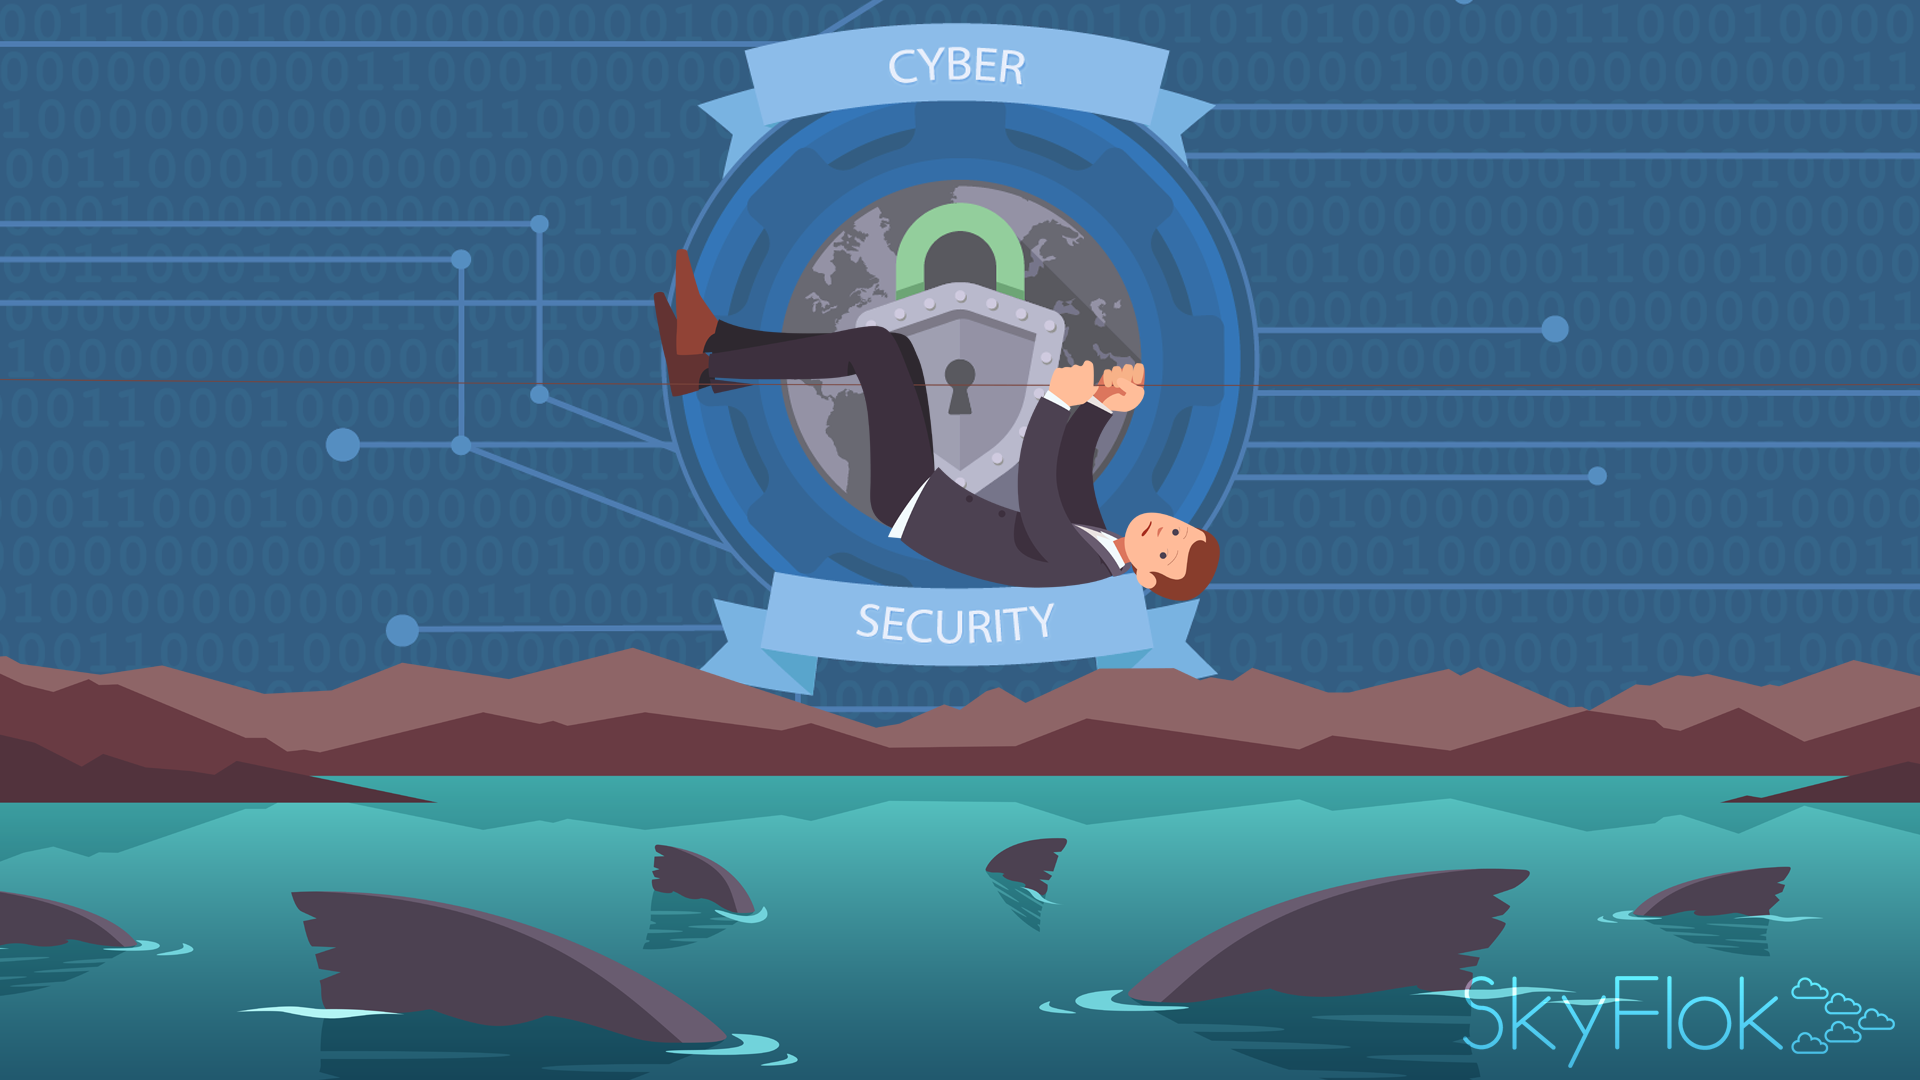 Risk, Cyberattacks, and Recommendations: Cybersecurity in the Cloud Native Era